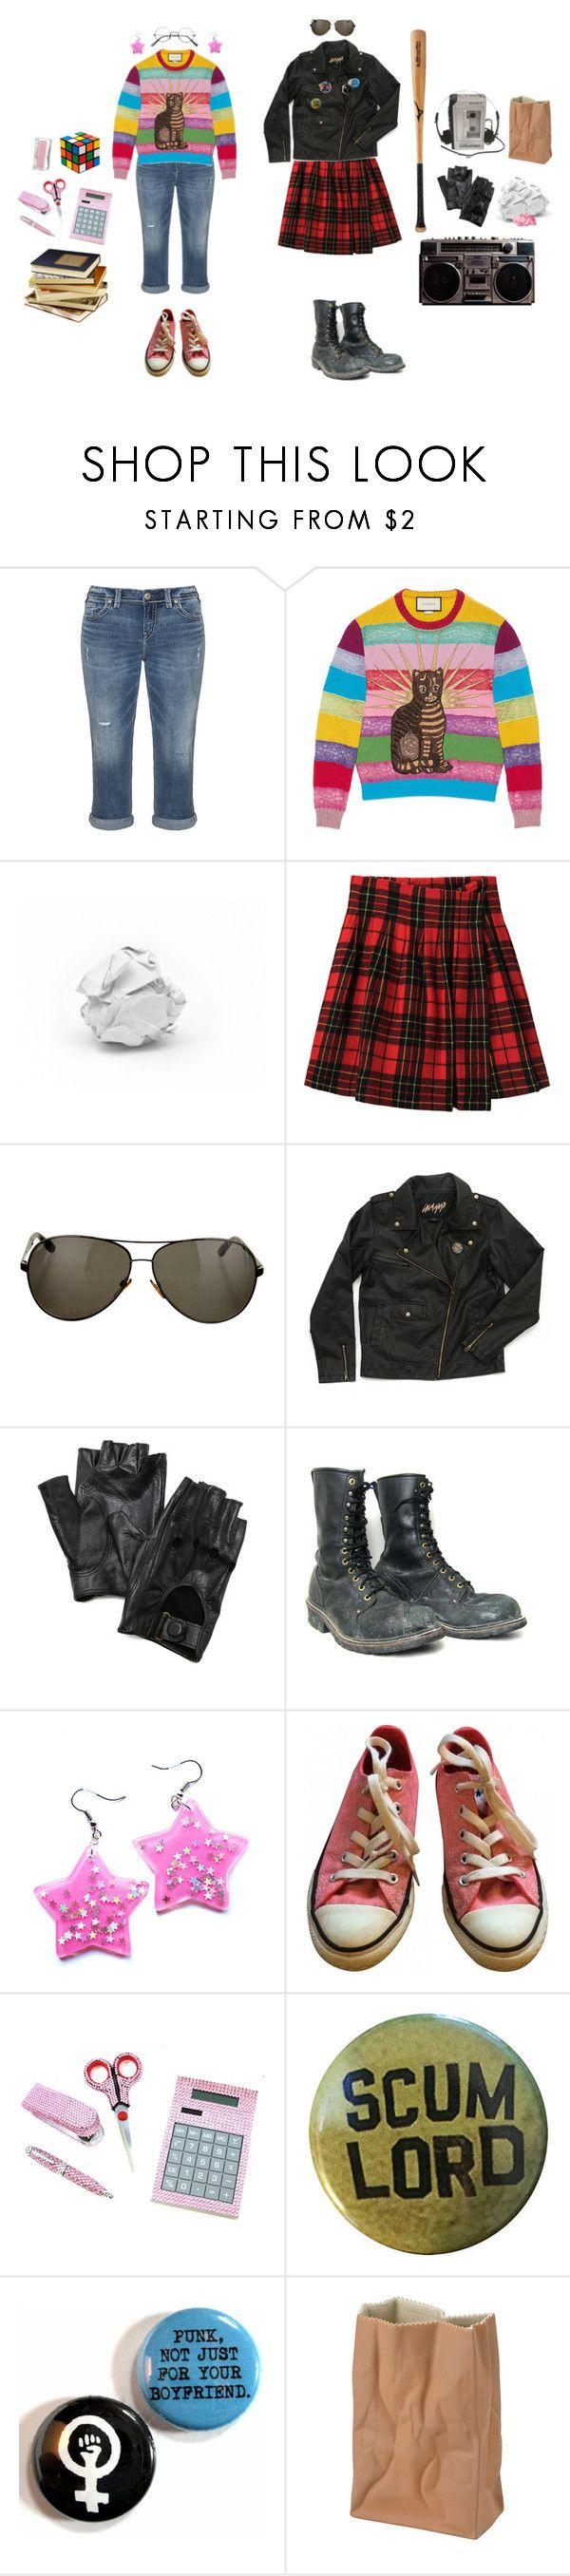 """""""80's High School Flick BFFs"""" by queenstormrider ❤ liked on Polyvore featuring Silver Jeans Co., Gucci, Mizuno, Limi Feu, Tom Ford, Børn, Carolina Amato, Converse, Rosenthal and vintage"""